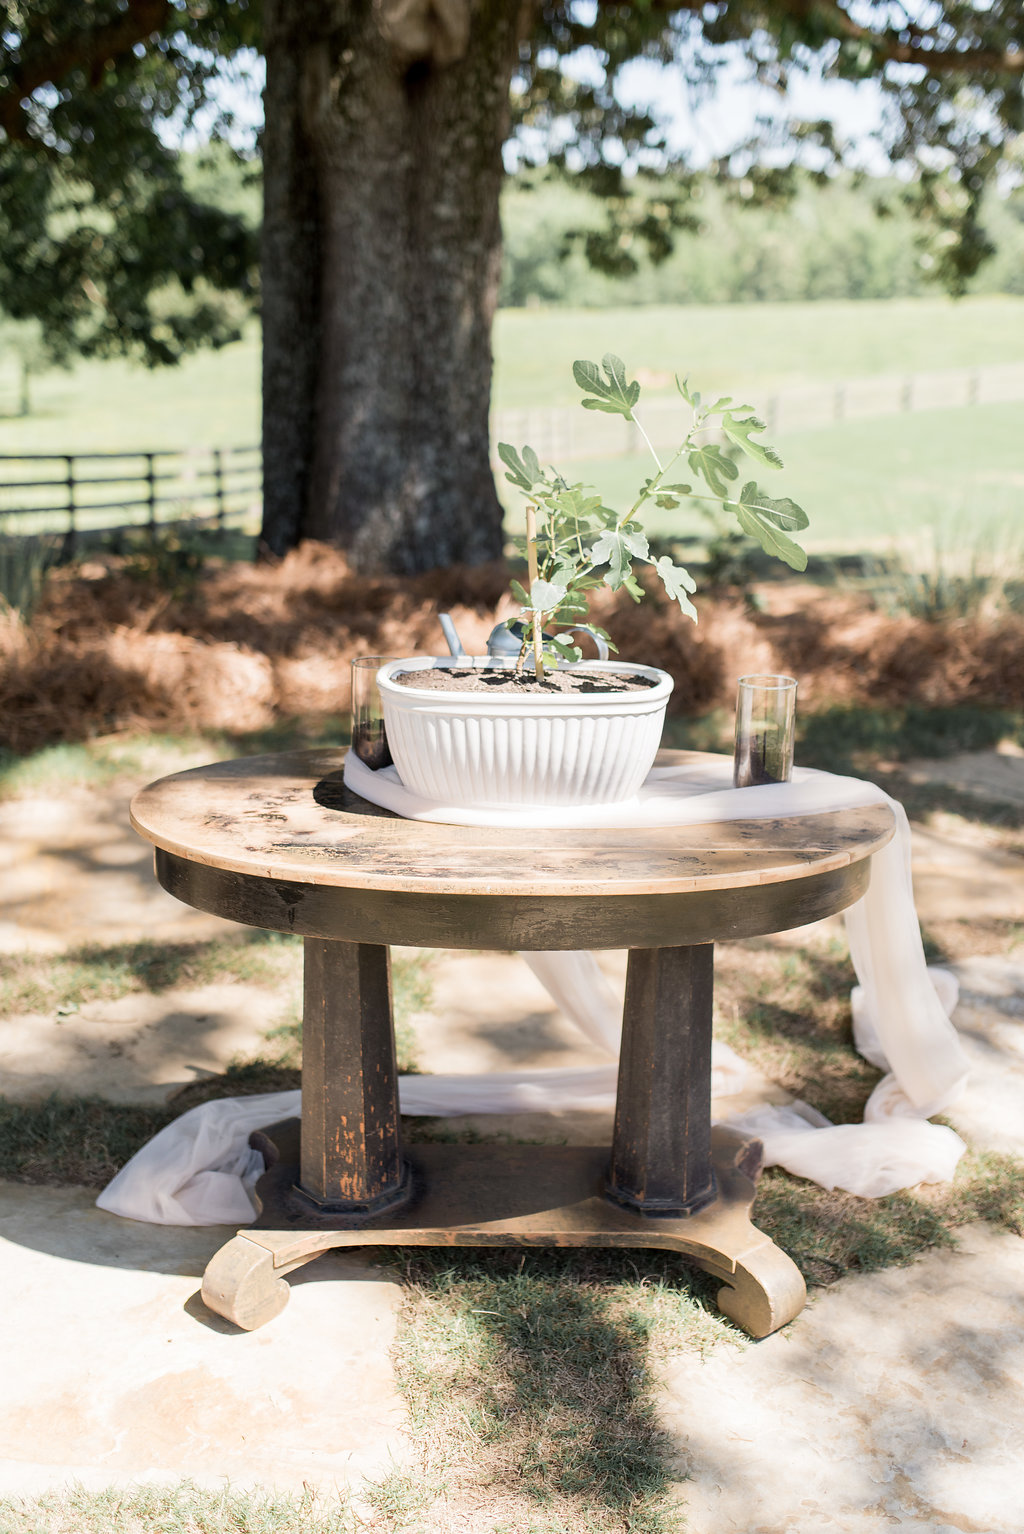 Benjamin. - Vintage library table for their planting unity ceremony.